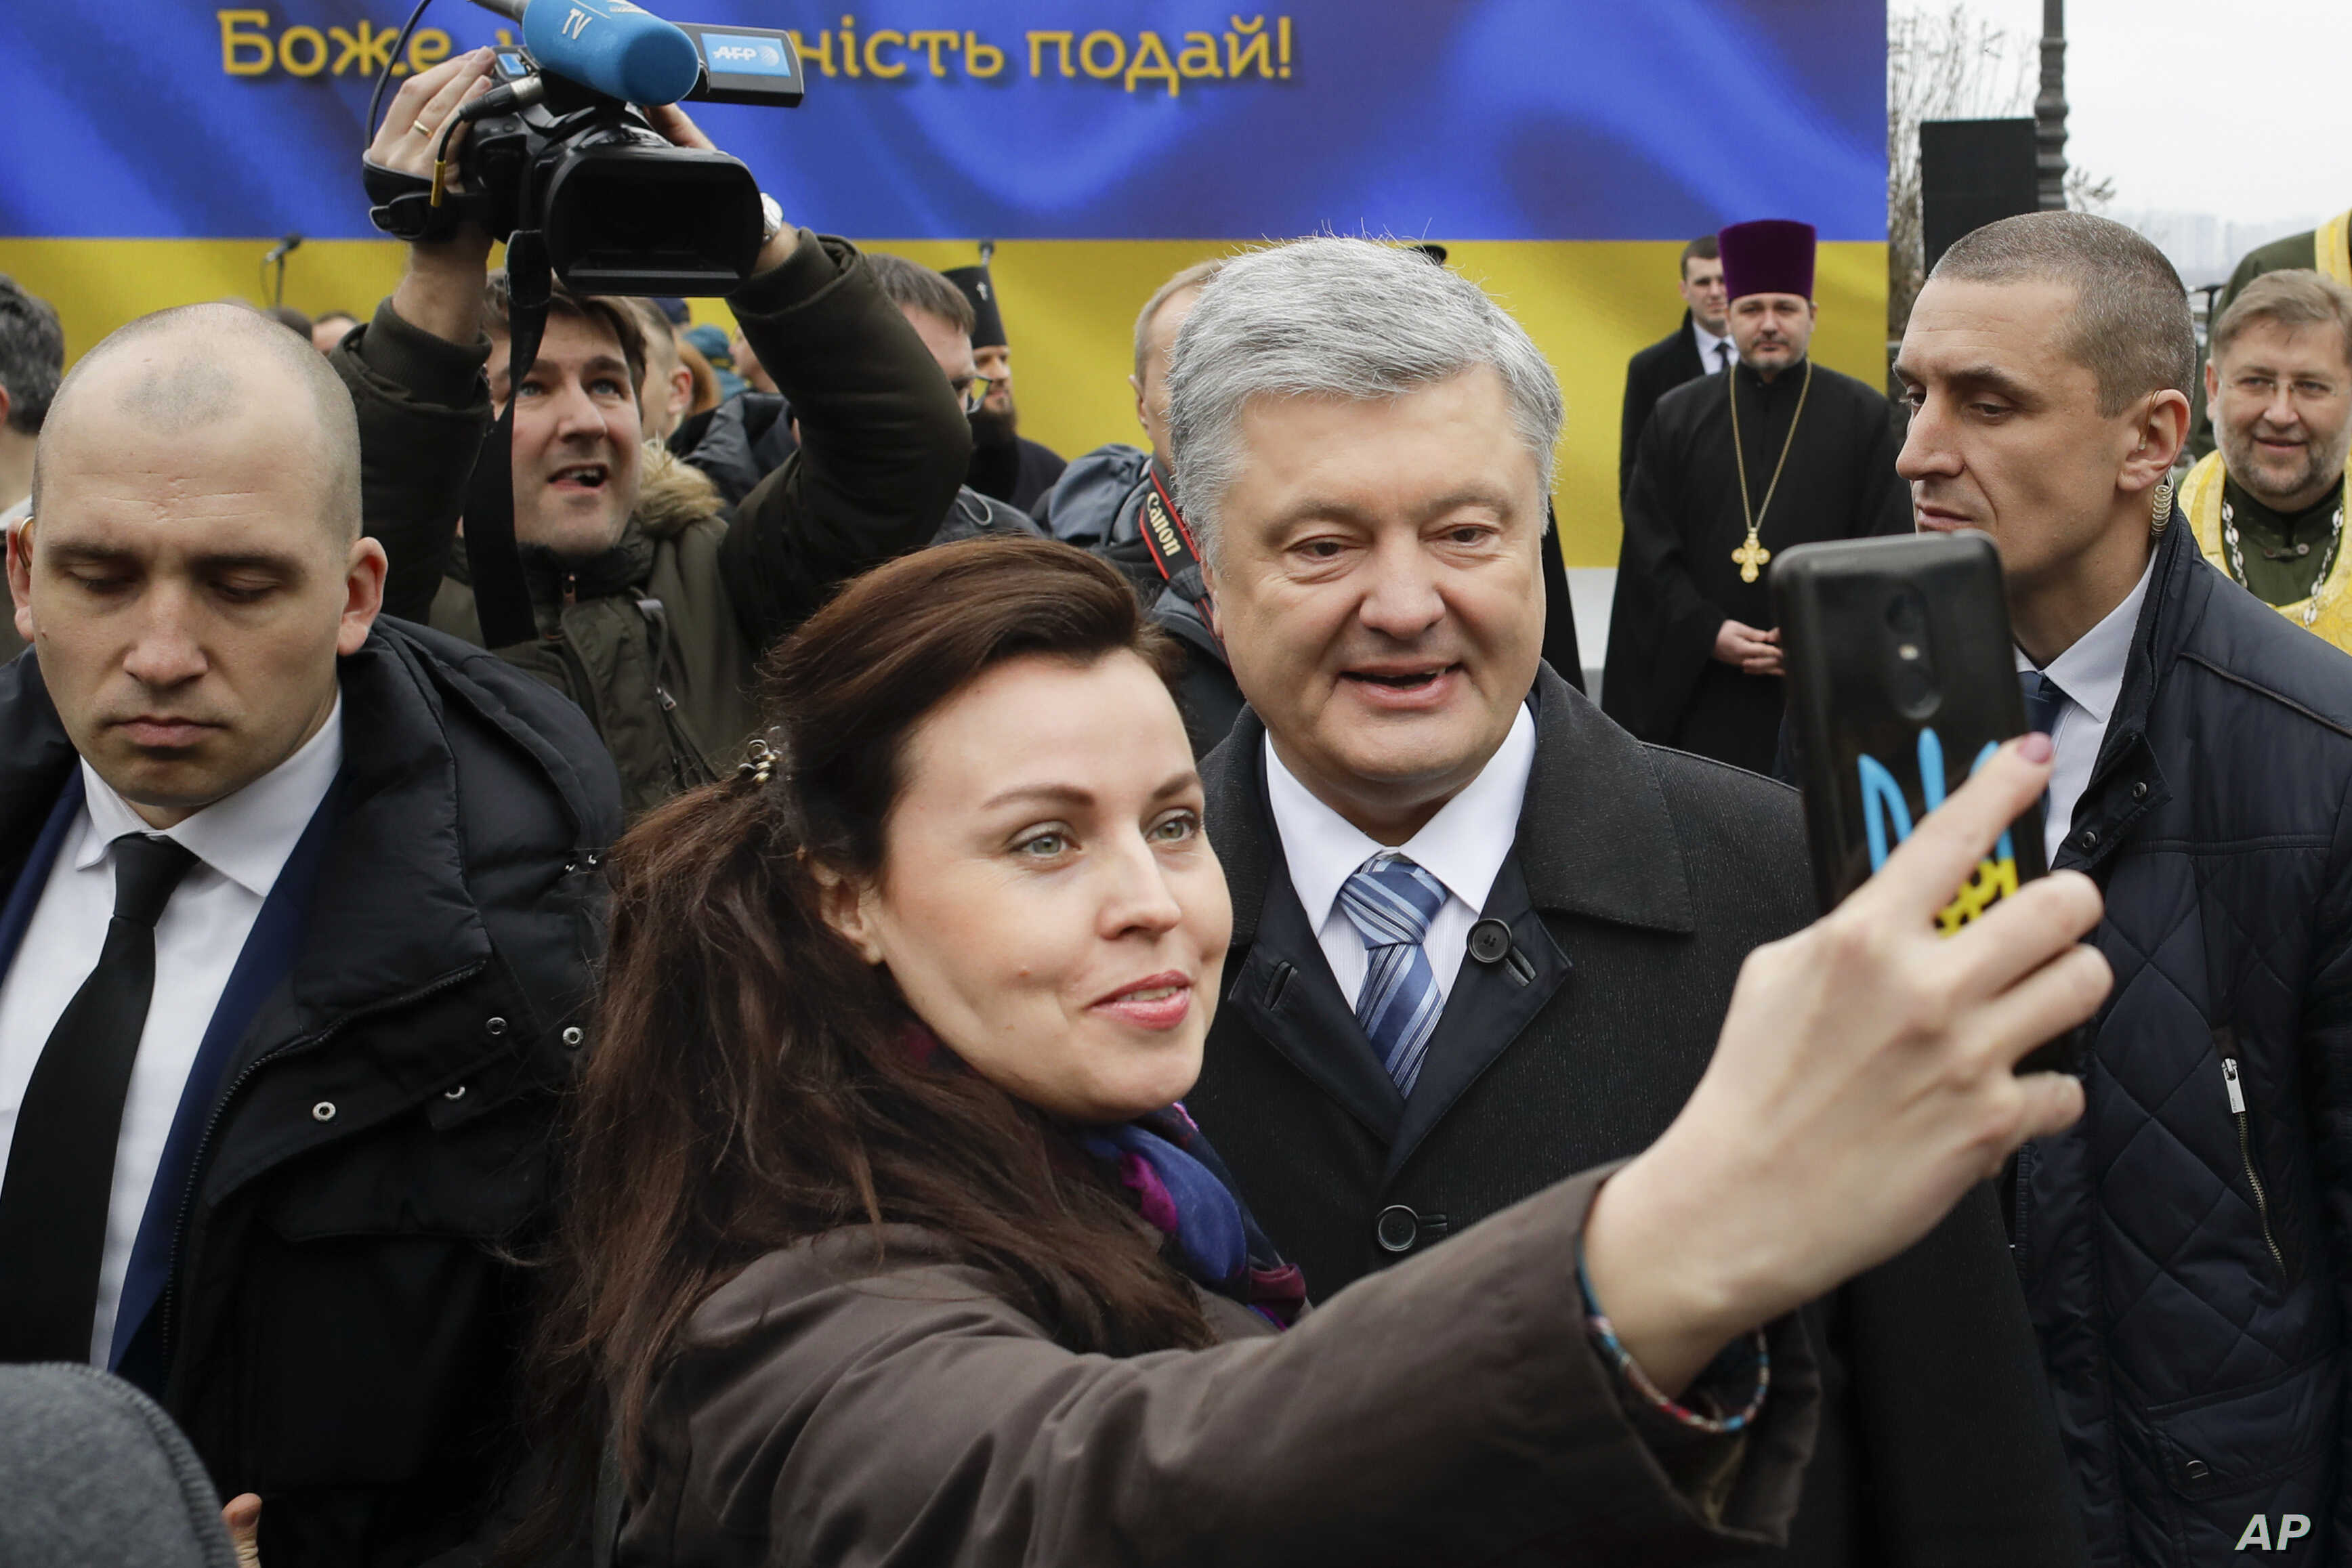 Incumbent Ukrainian President Petro Poroshenko, surrounded by bodyguards, poses for a selfie with a supporter, after a public prayer service ahead of Sunday's presidential election, in Kyiv, Ukraine, March 30, 2019.